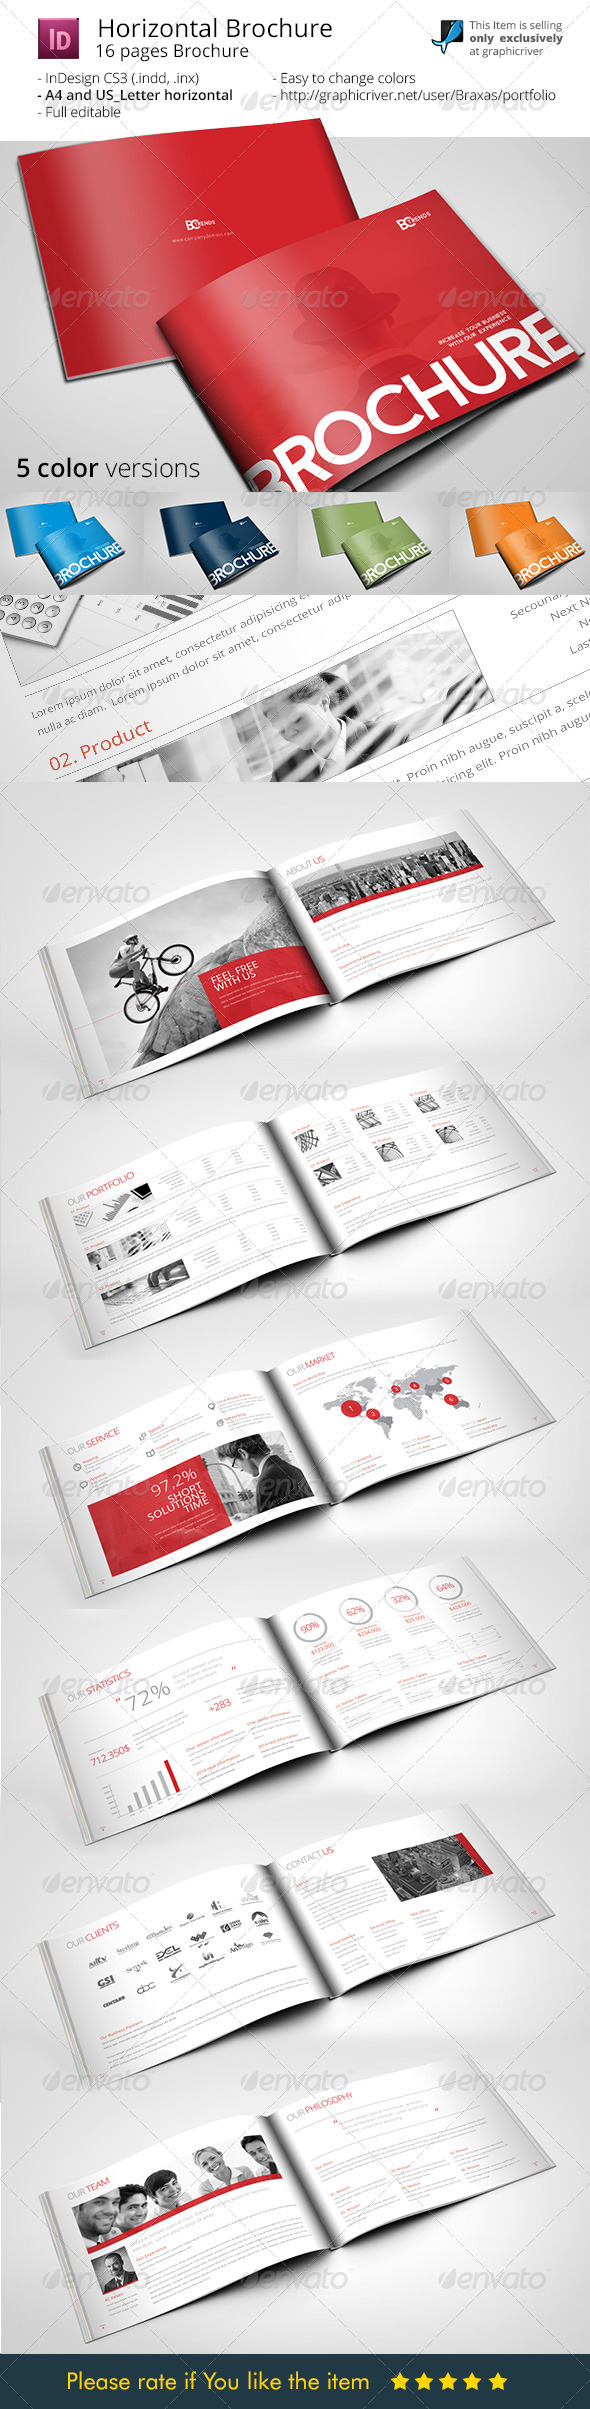 Business brochure horizontal by braxas graphicriver for Horizontal brochure template